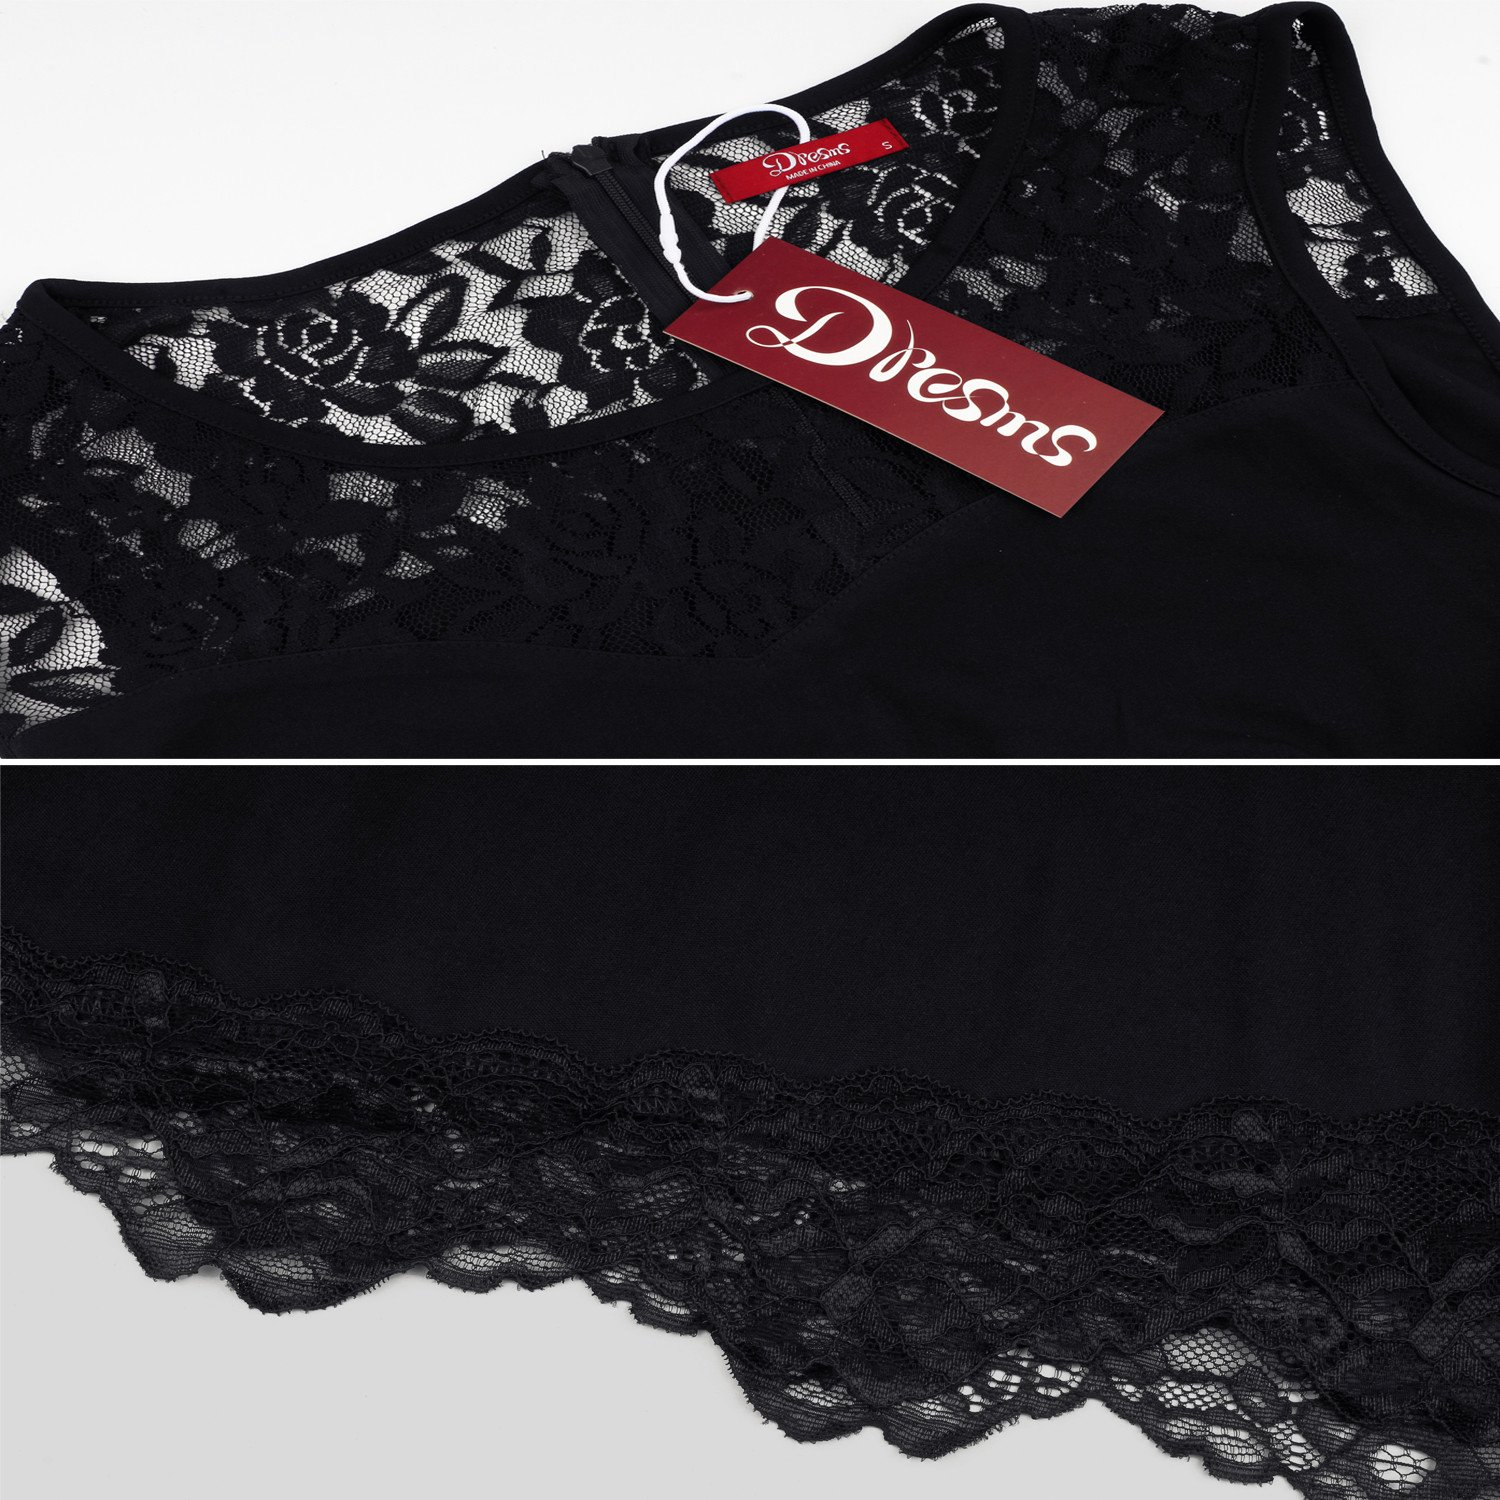 Dresms Women Sleeveless Lace Floral Elegant Cocktail Dress Crew Neck Knee Length (Black, Small) by Dresms (Image #6)